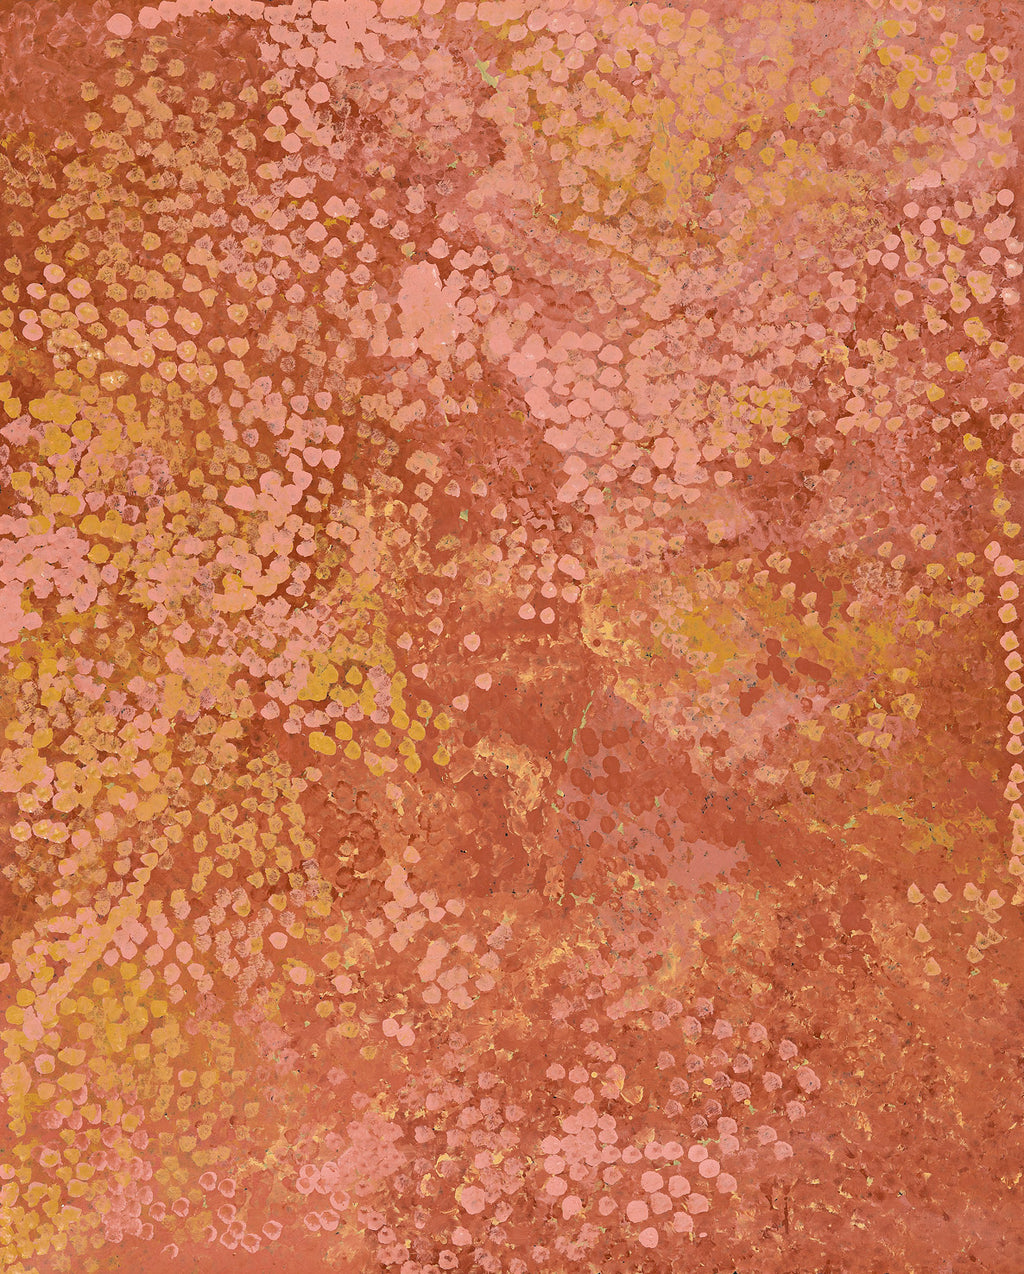 Emily Kame Kngwarreye, Painting 92F093, 1992, 120x150cm - Delmore Gallery